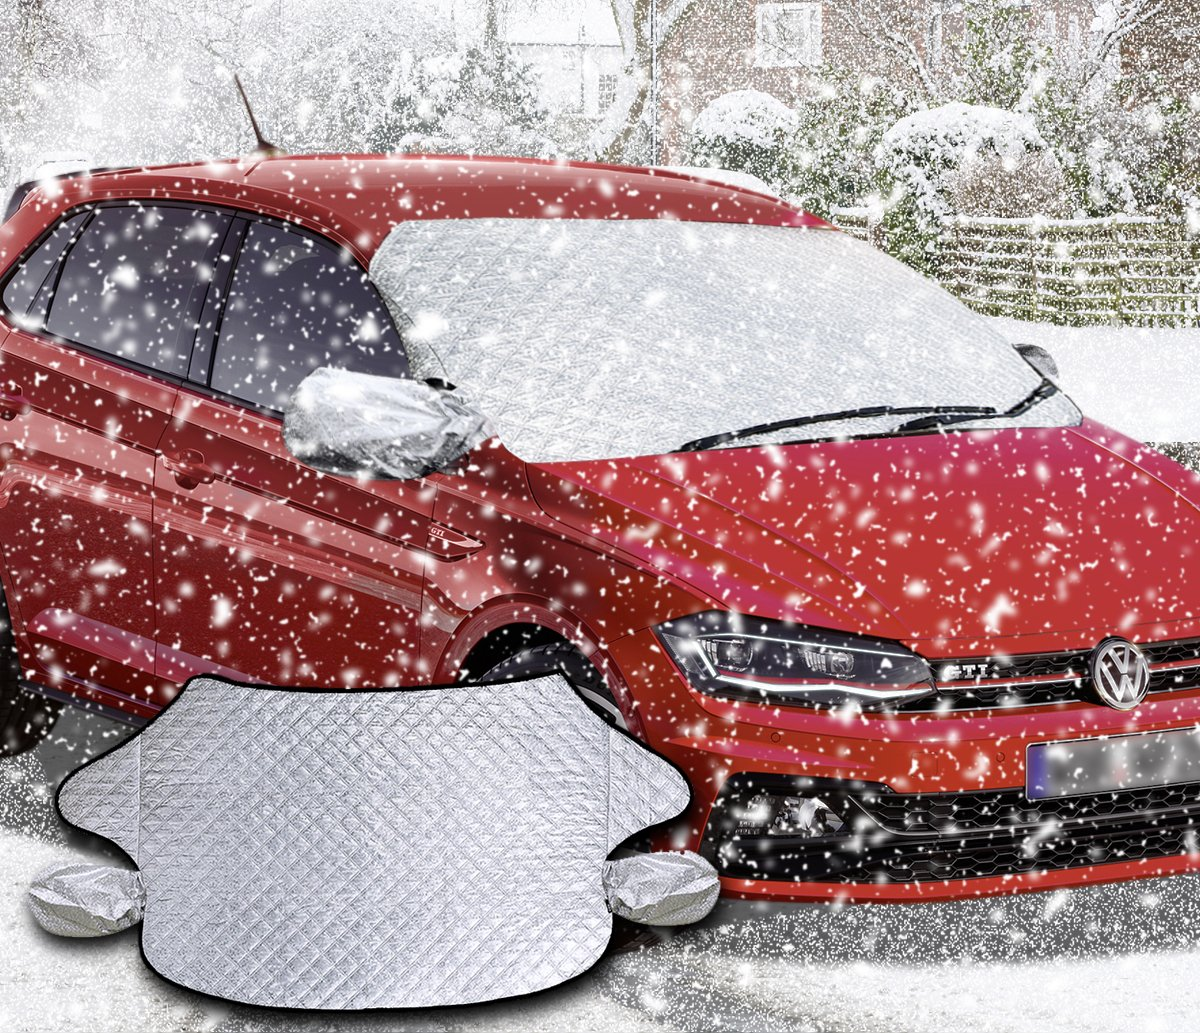 Sun UV-Rays Zento Deals Car Windshield and Side Mirrors Cover Protector from Winter Ice//Snow and Scratches Waterproof and No Leakage with Anti-Theft Design Fire Retardant Black and Silver Color Cov 5559001246